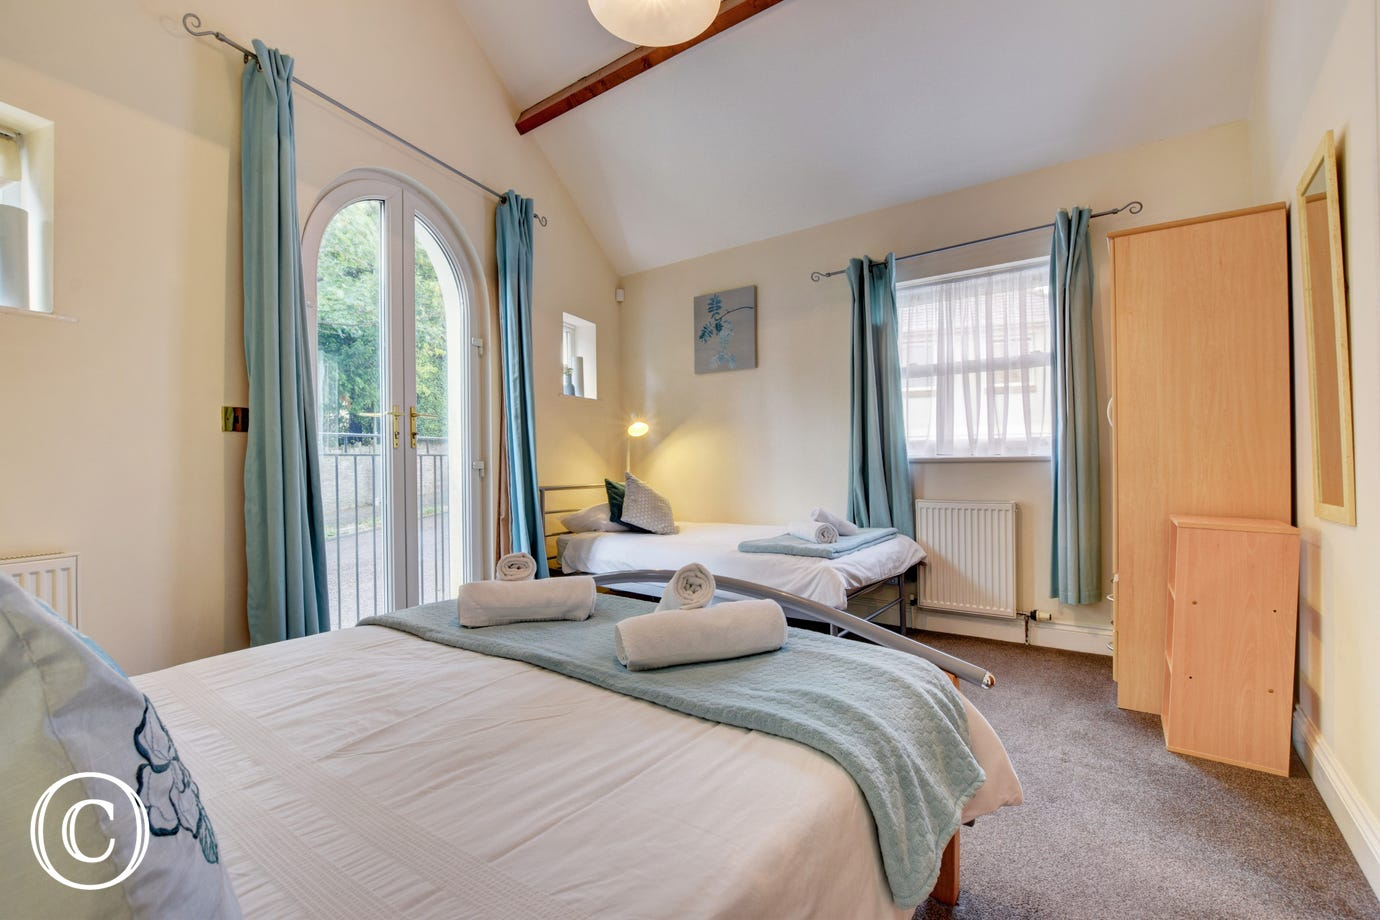 Sunnyhill Mews Holiday Cottage Torquay - Bedroom 2 Single